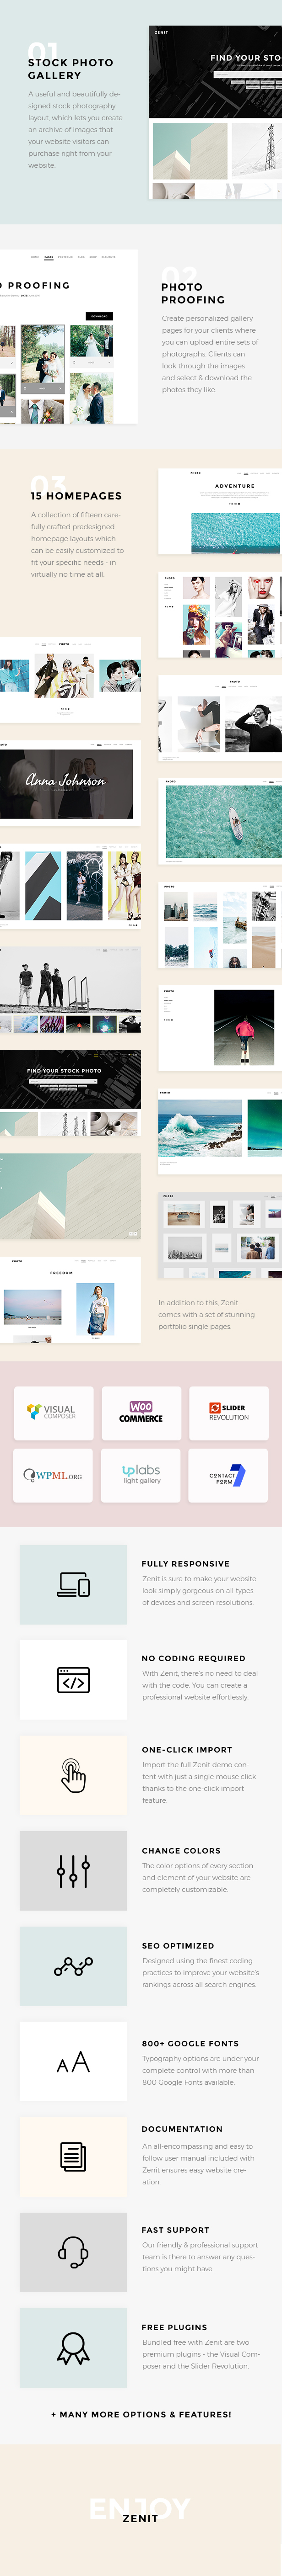 WordPress theme Zenit - A Crisp and Clean Photography Theme (Photography)